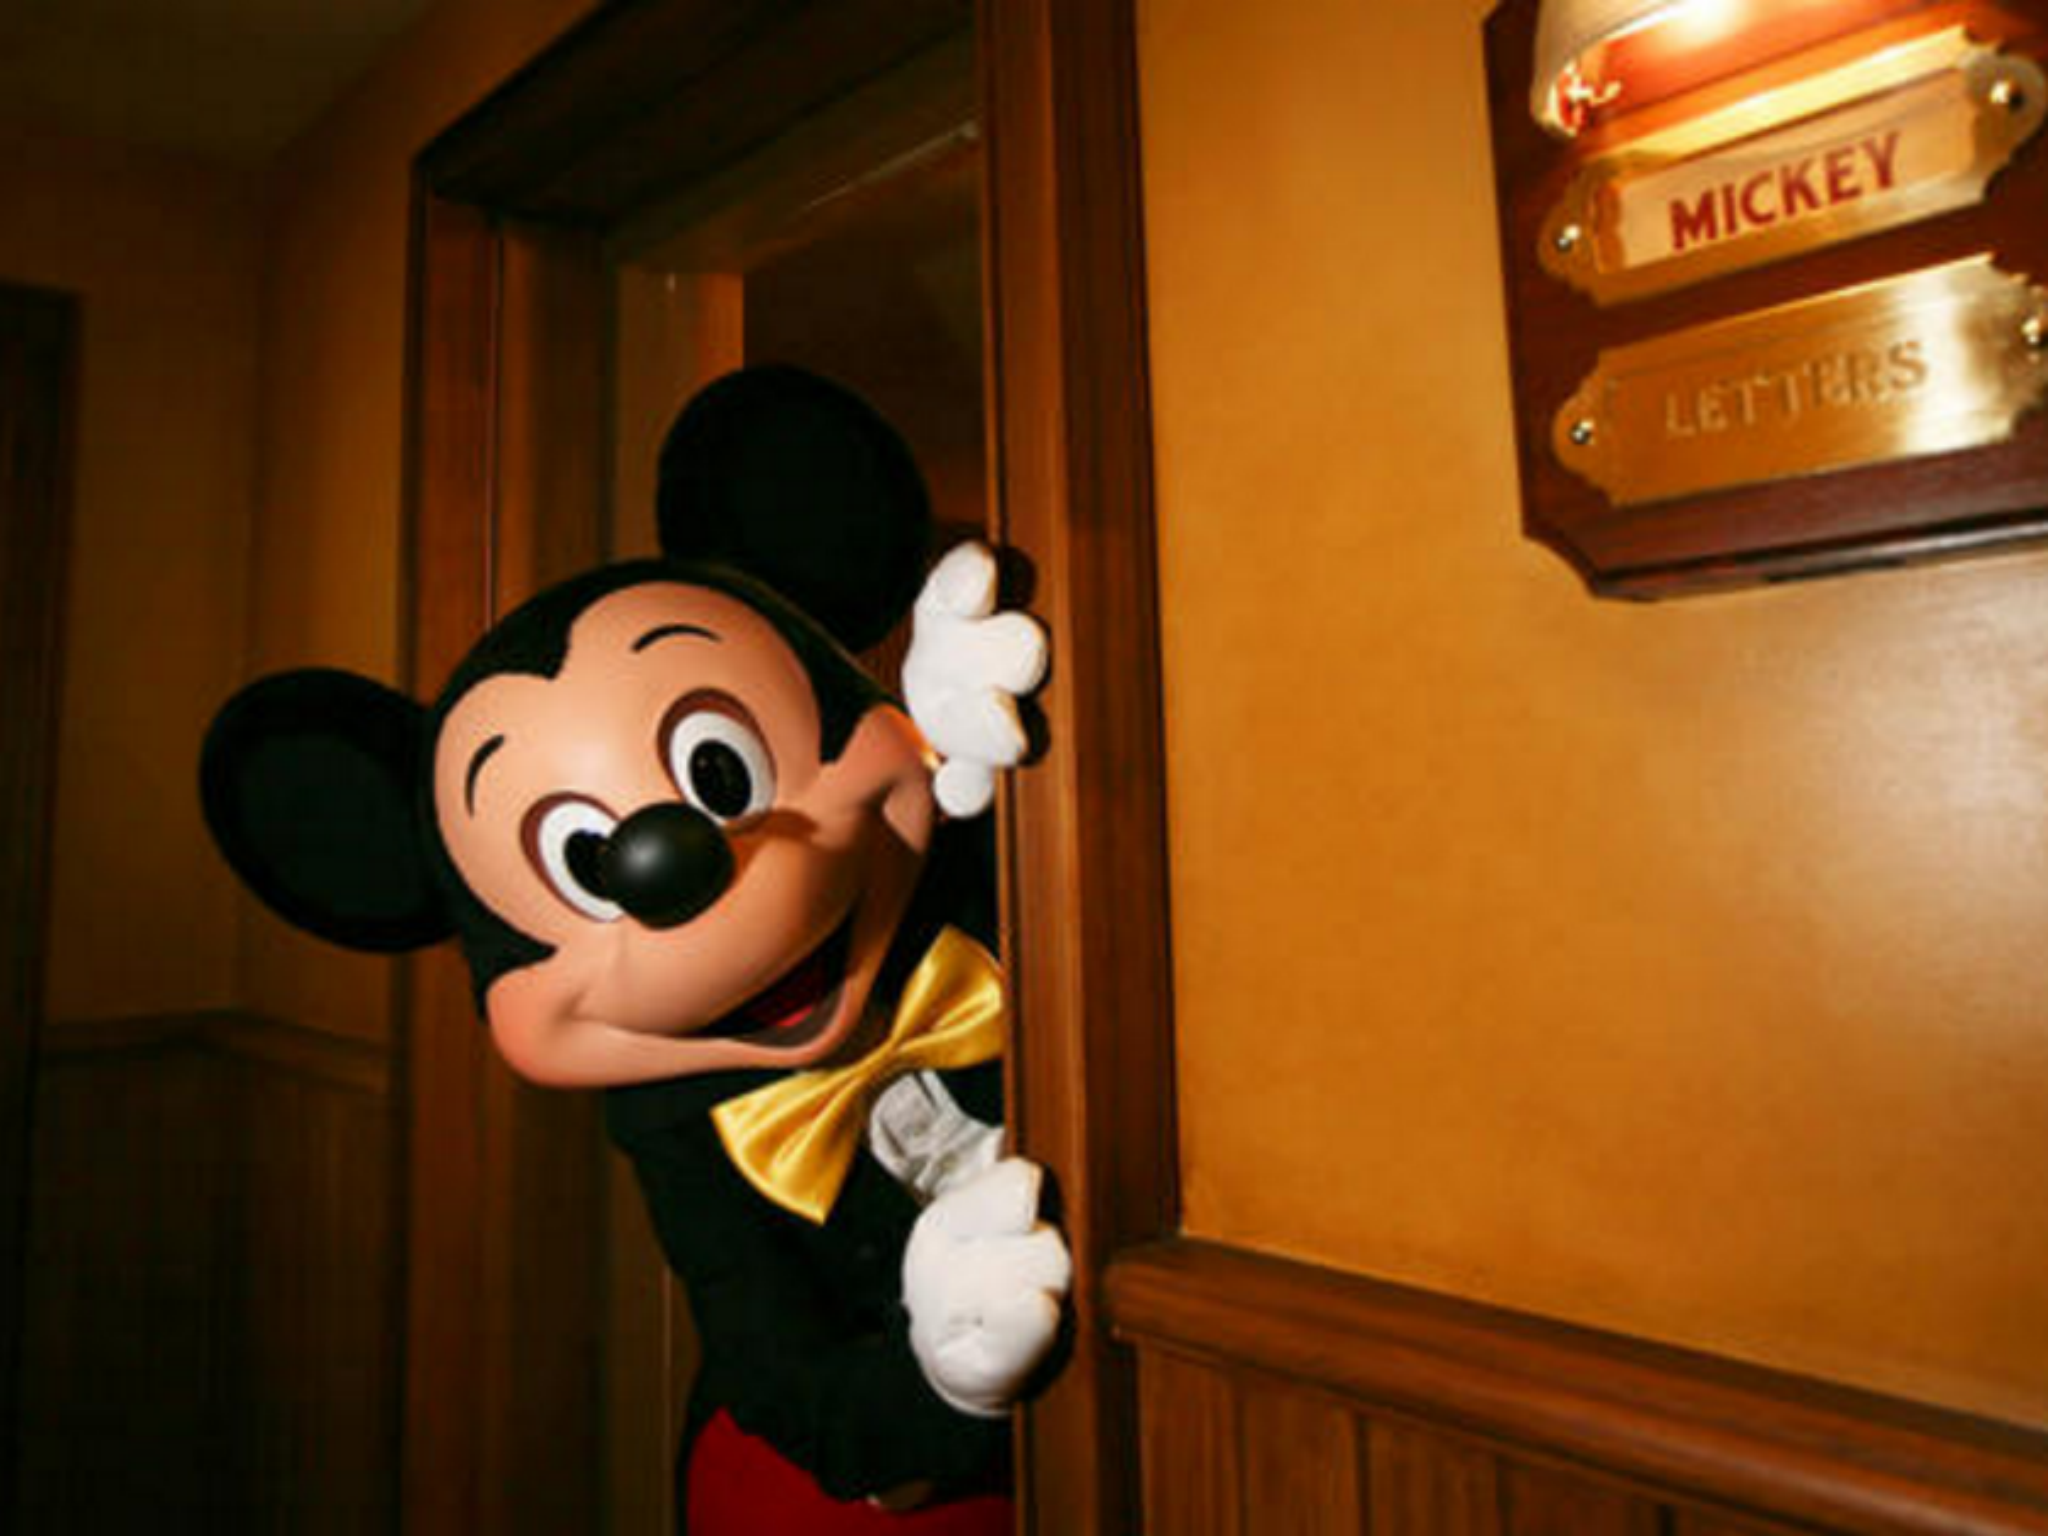 Disney To Introduce Ai Robot Mickey Mouse At Theme Parks Insists It